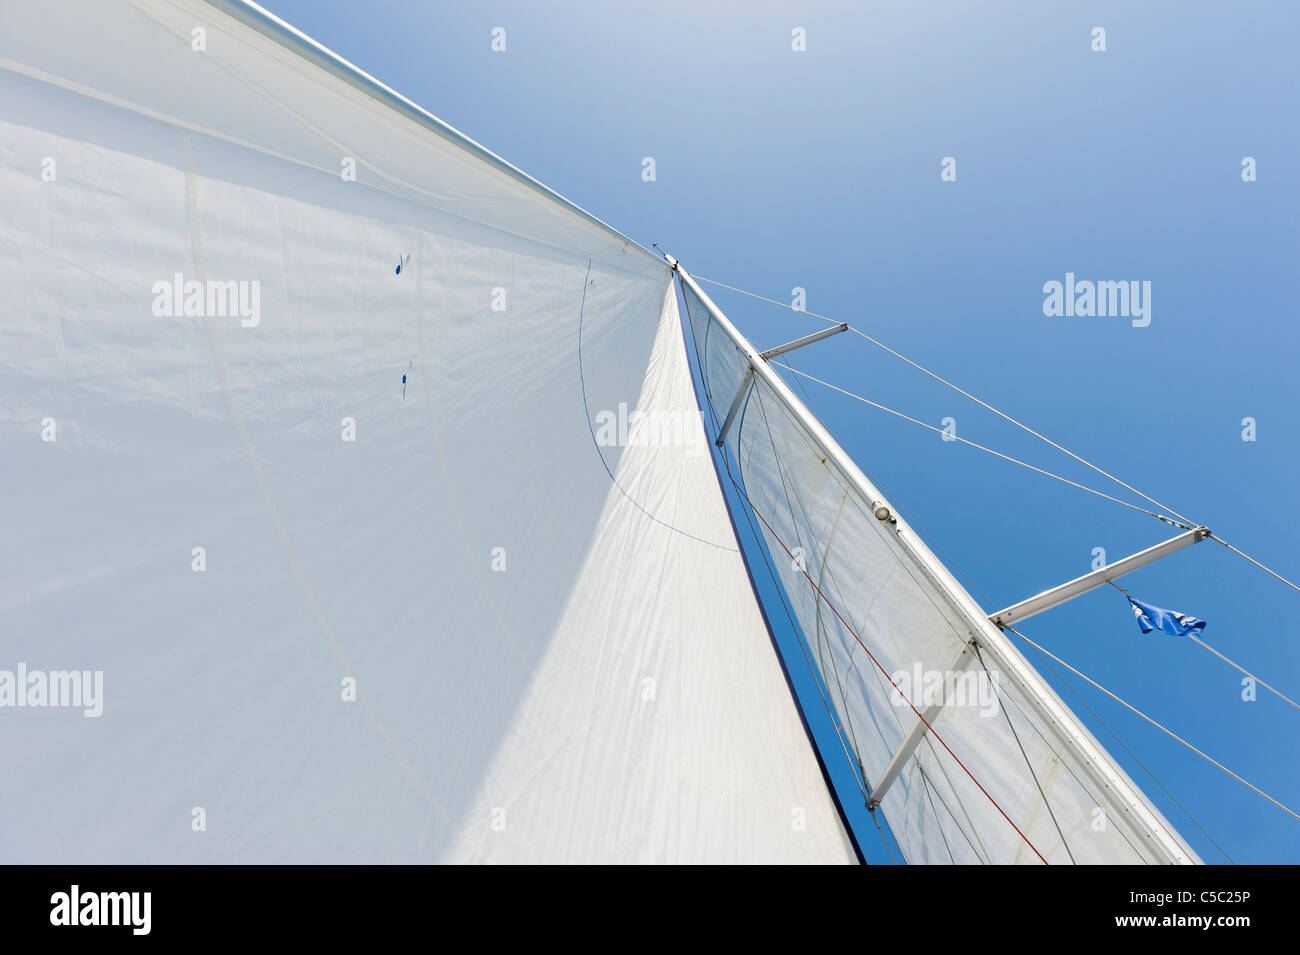 Close-up of a sail bermuda rigged against the blue sky - Stock Image